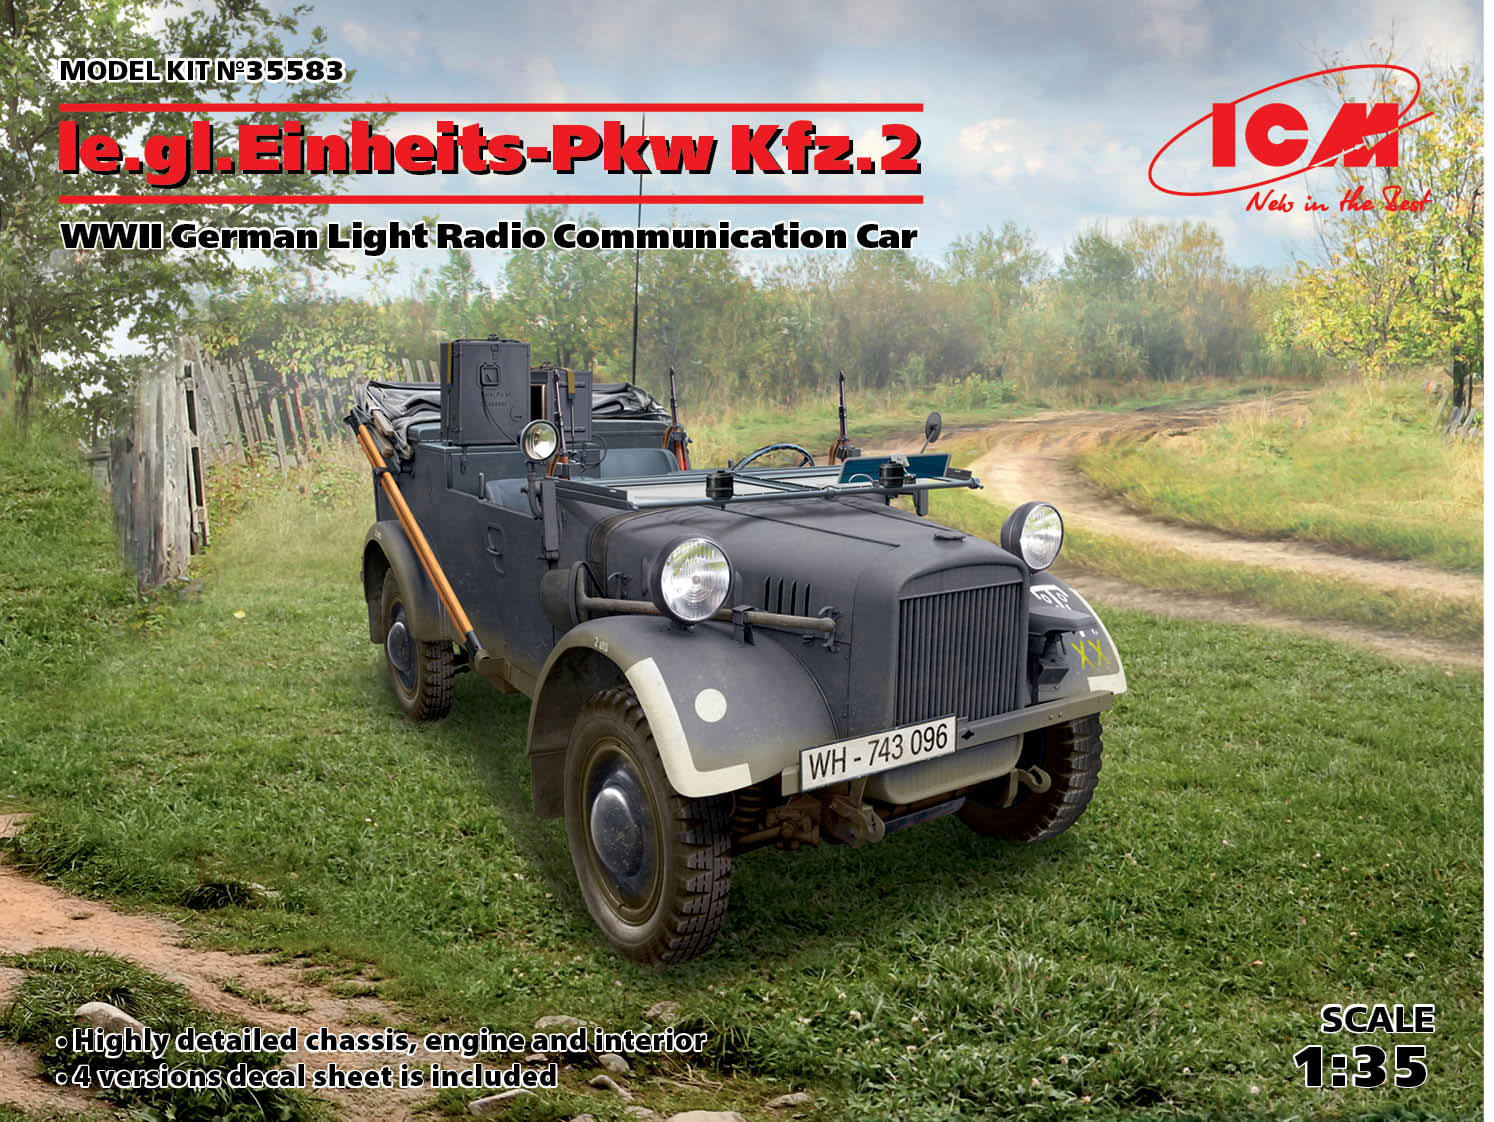 ICM le.gl.Einheitz-Pkw Kfz.2, WWII German Light Radio Communication Car